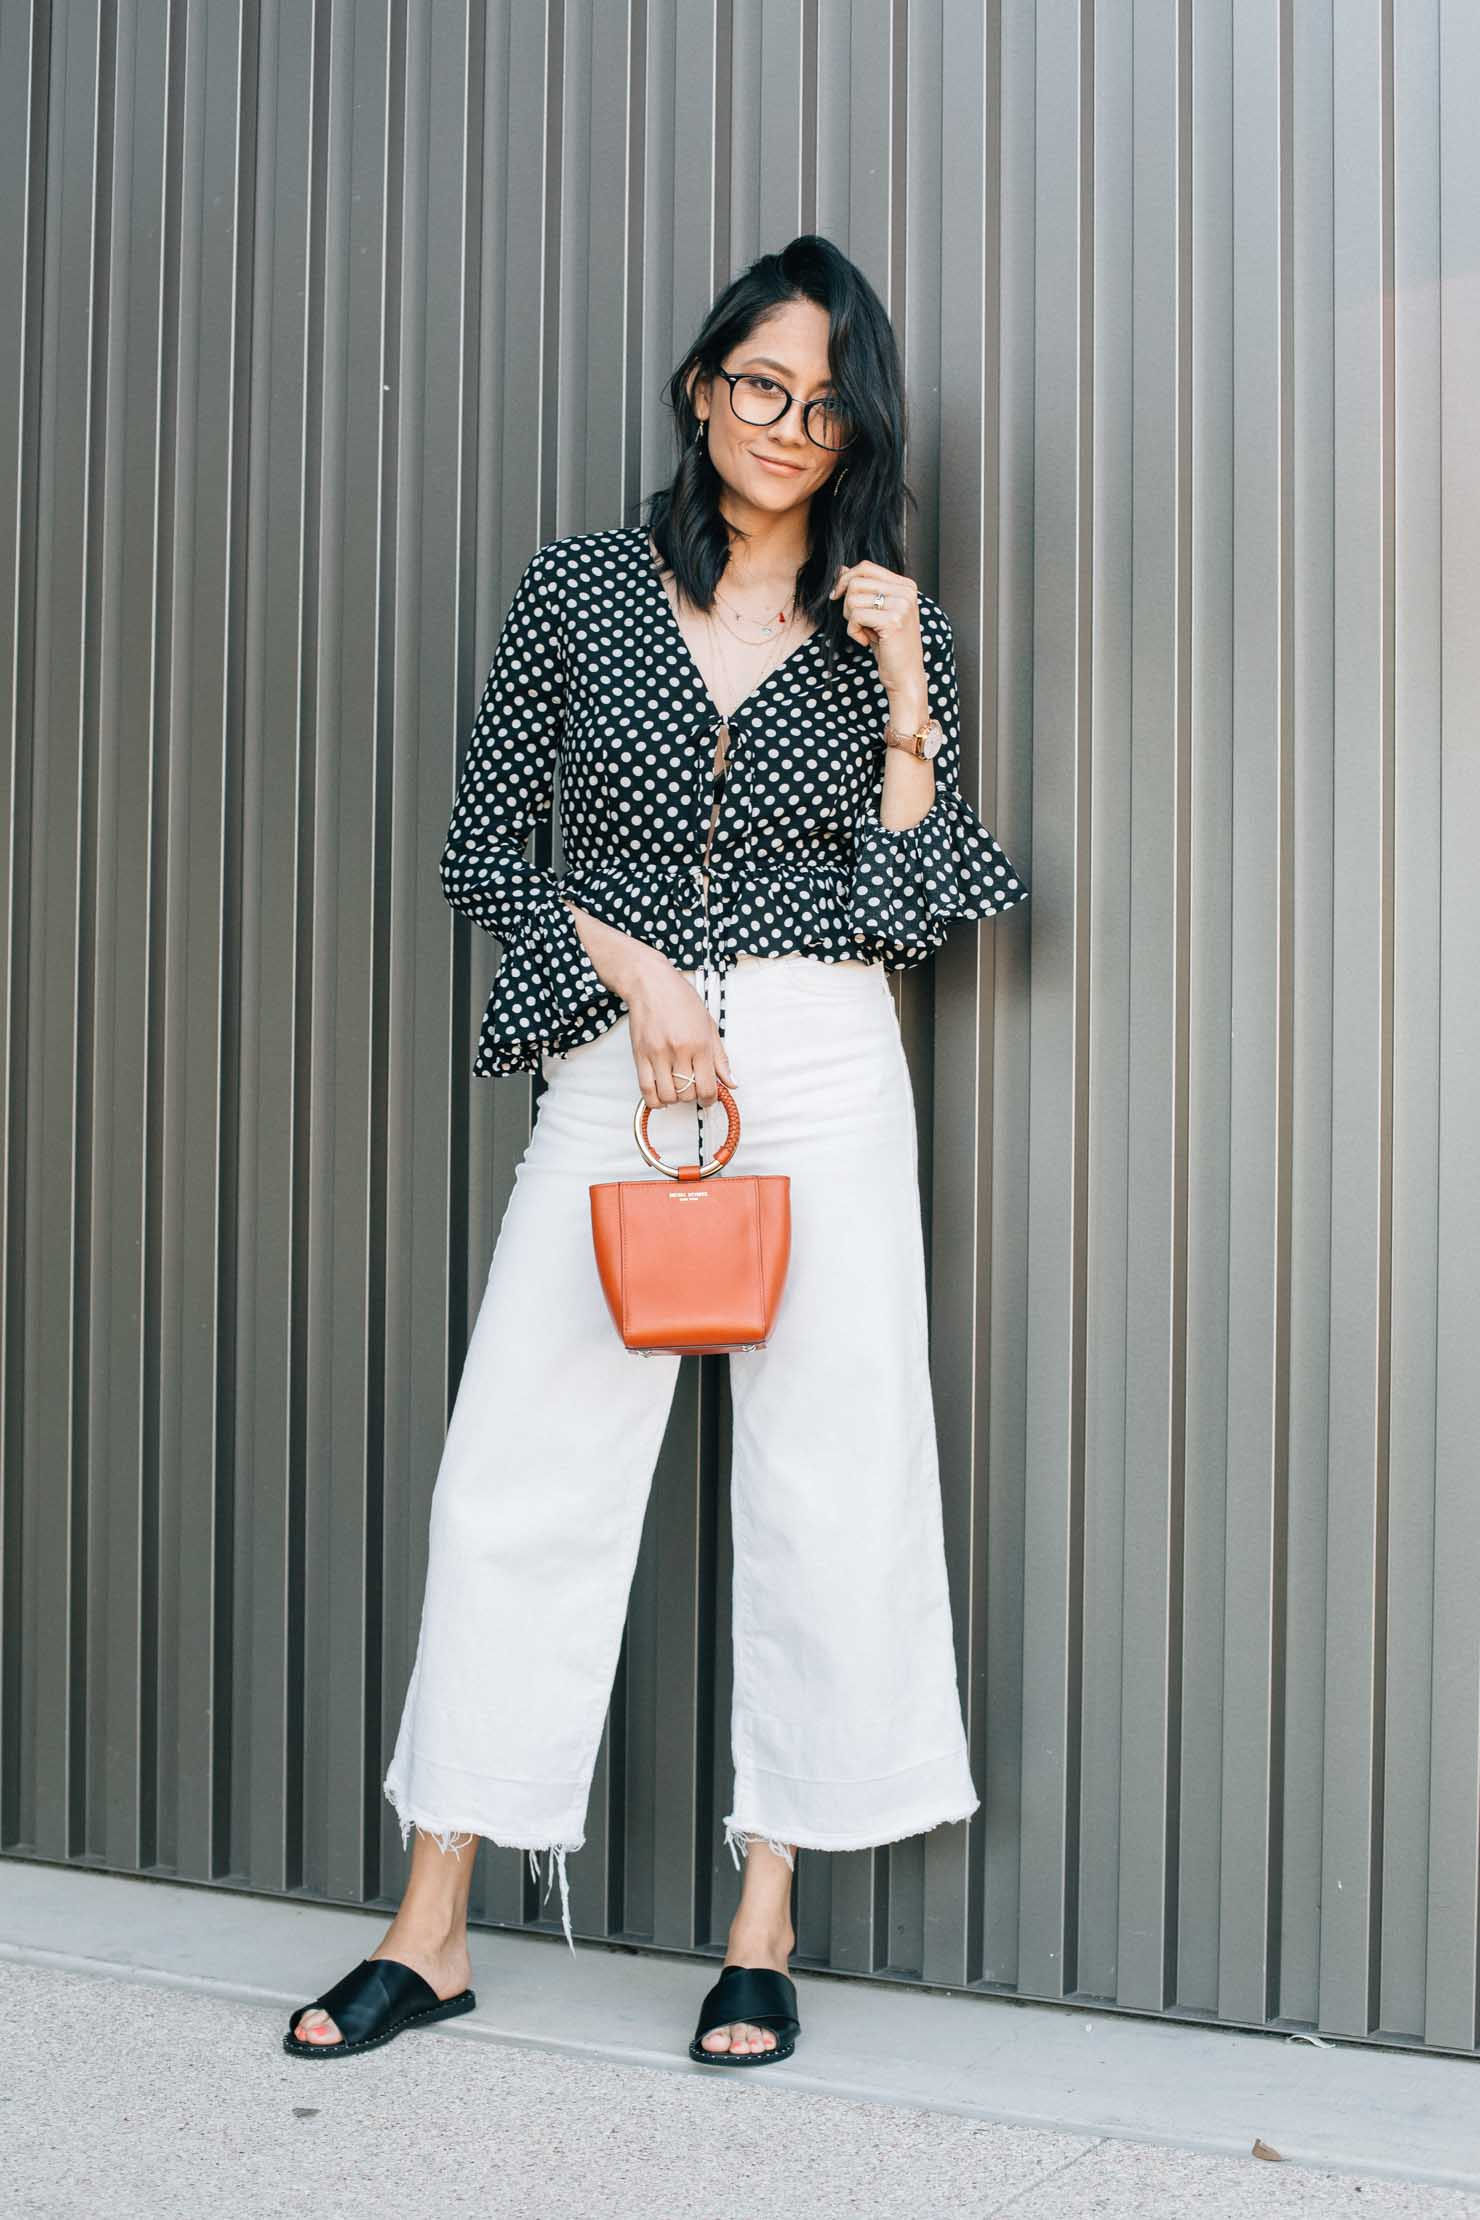 Fashion blogger Lilly Beltran | Polka dot crop top & wide leg denim | Henri Bendel Bag | Street Style